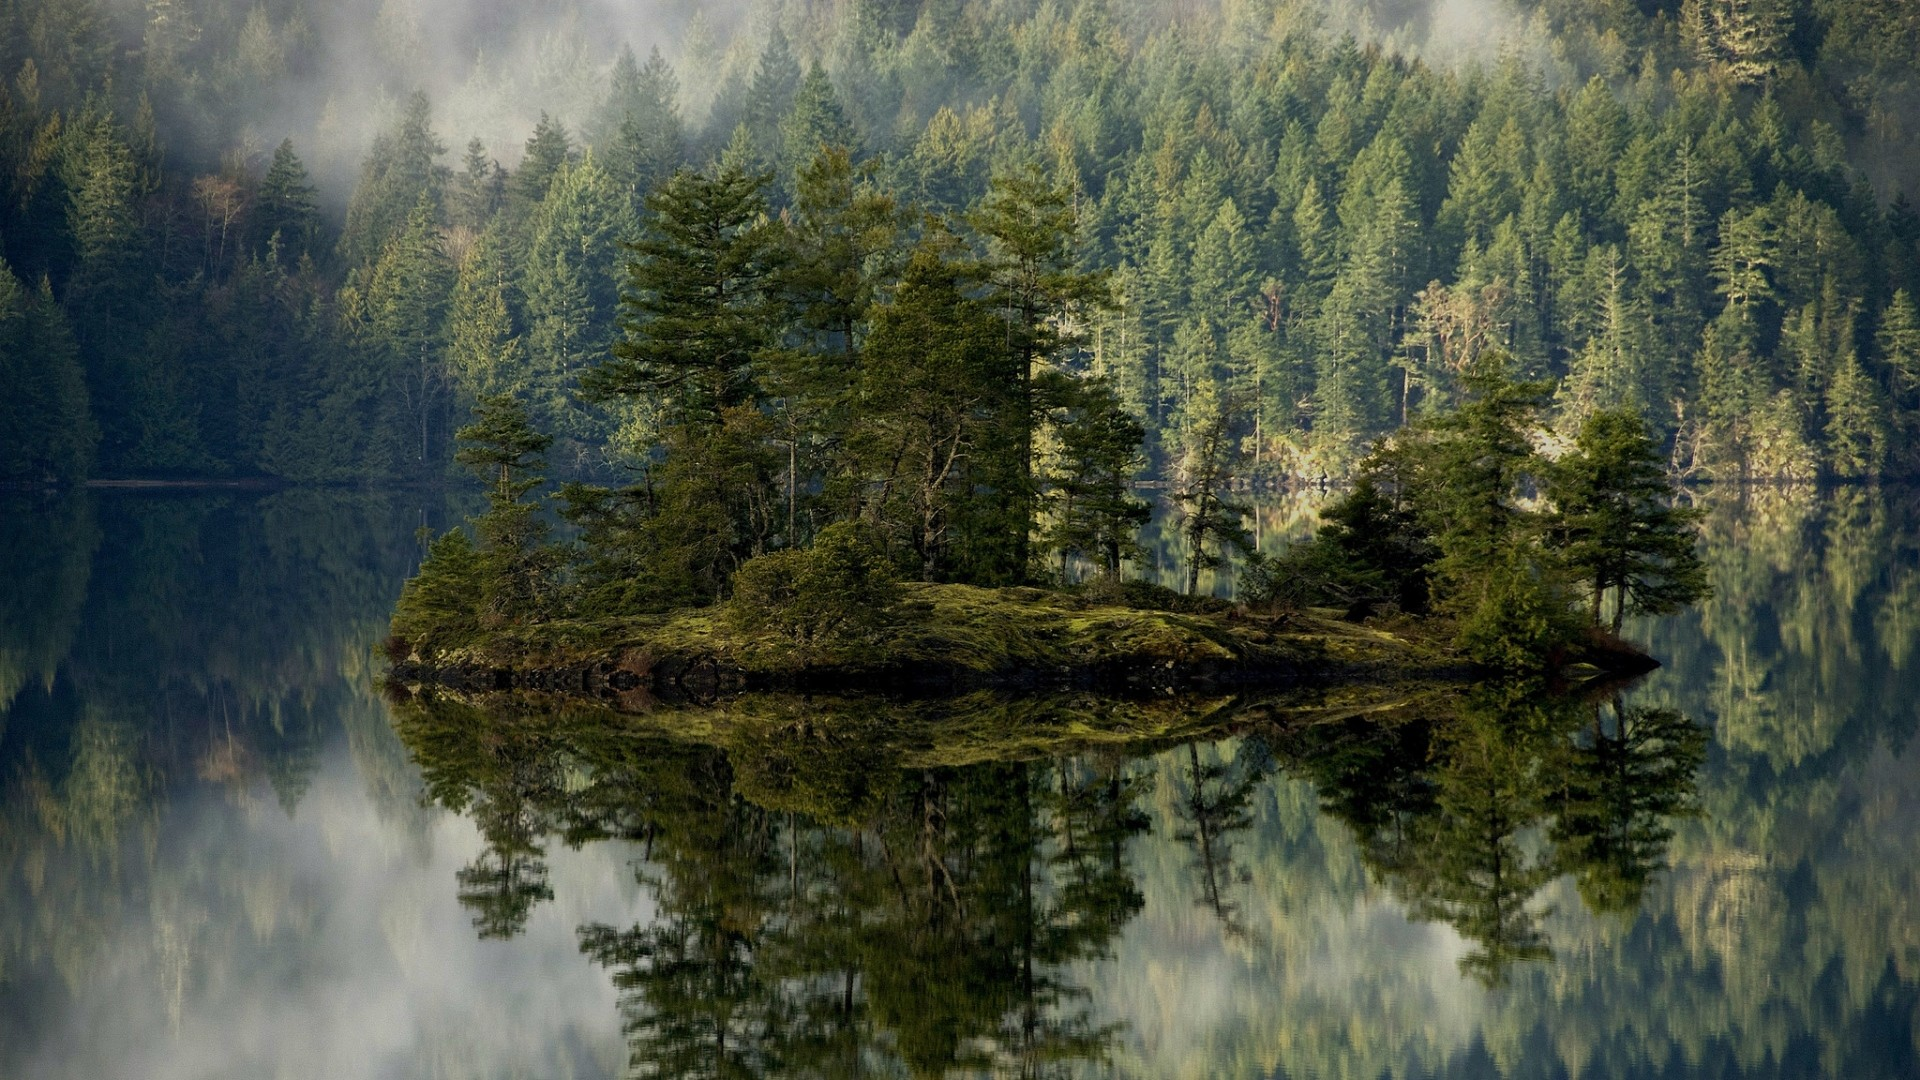 1920x1080 Preview wallpaper forest, lake, reflection, island, mist